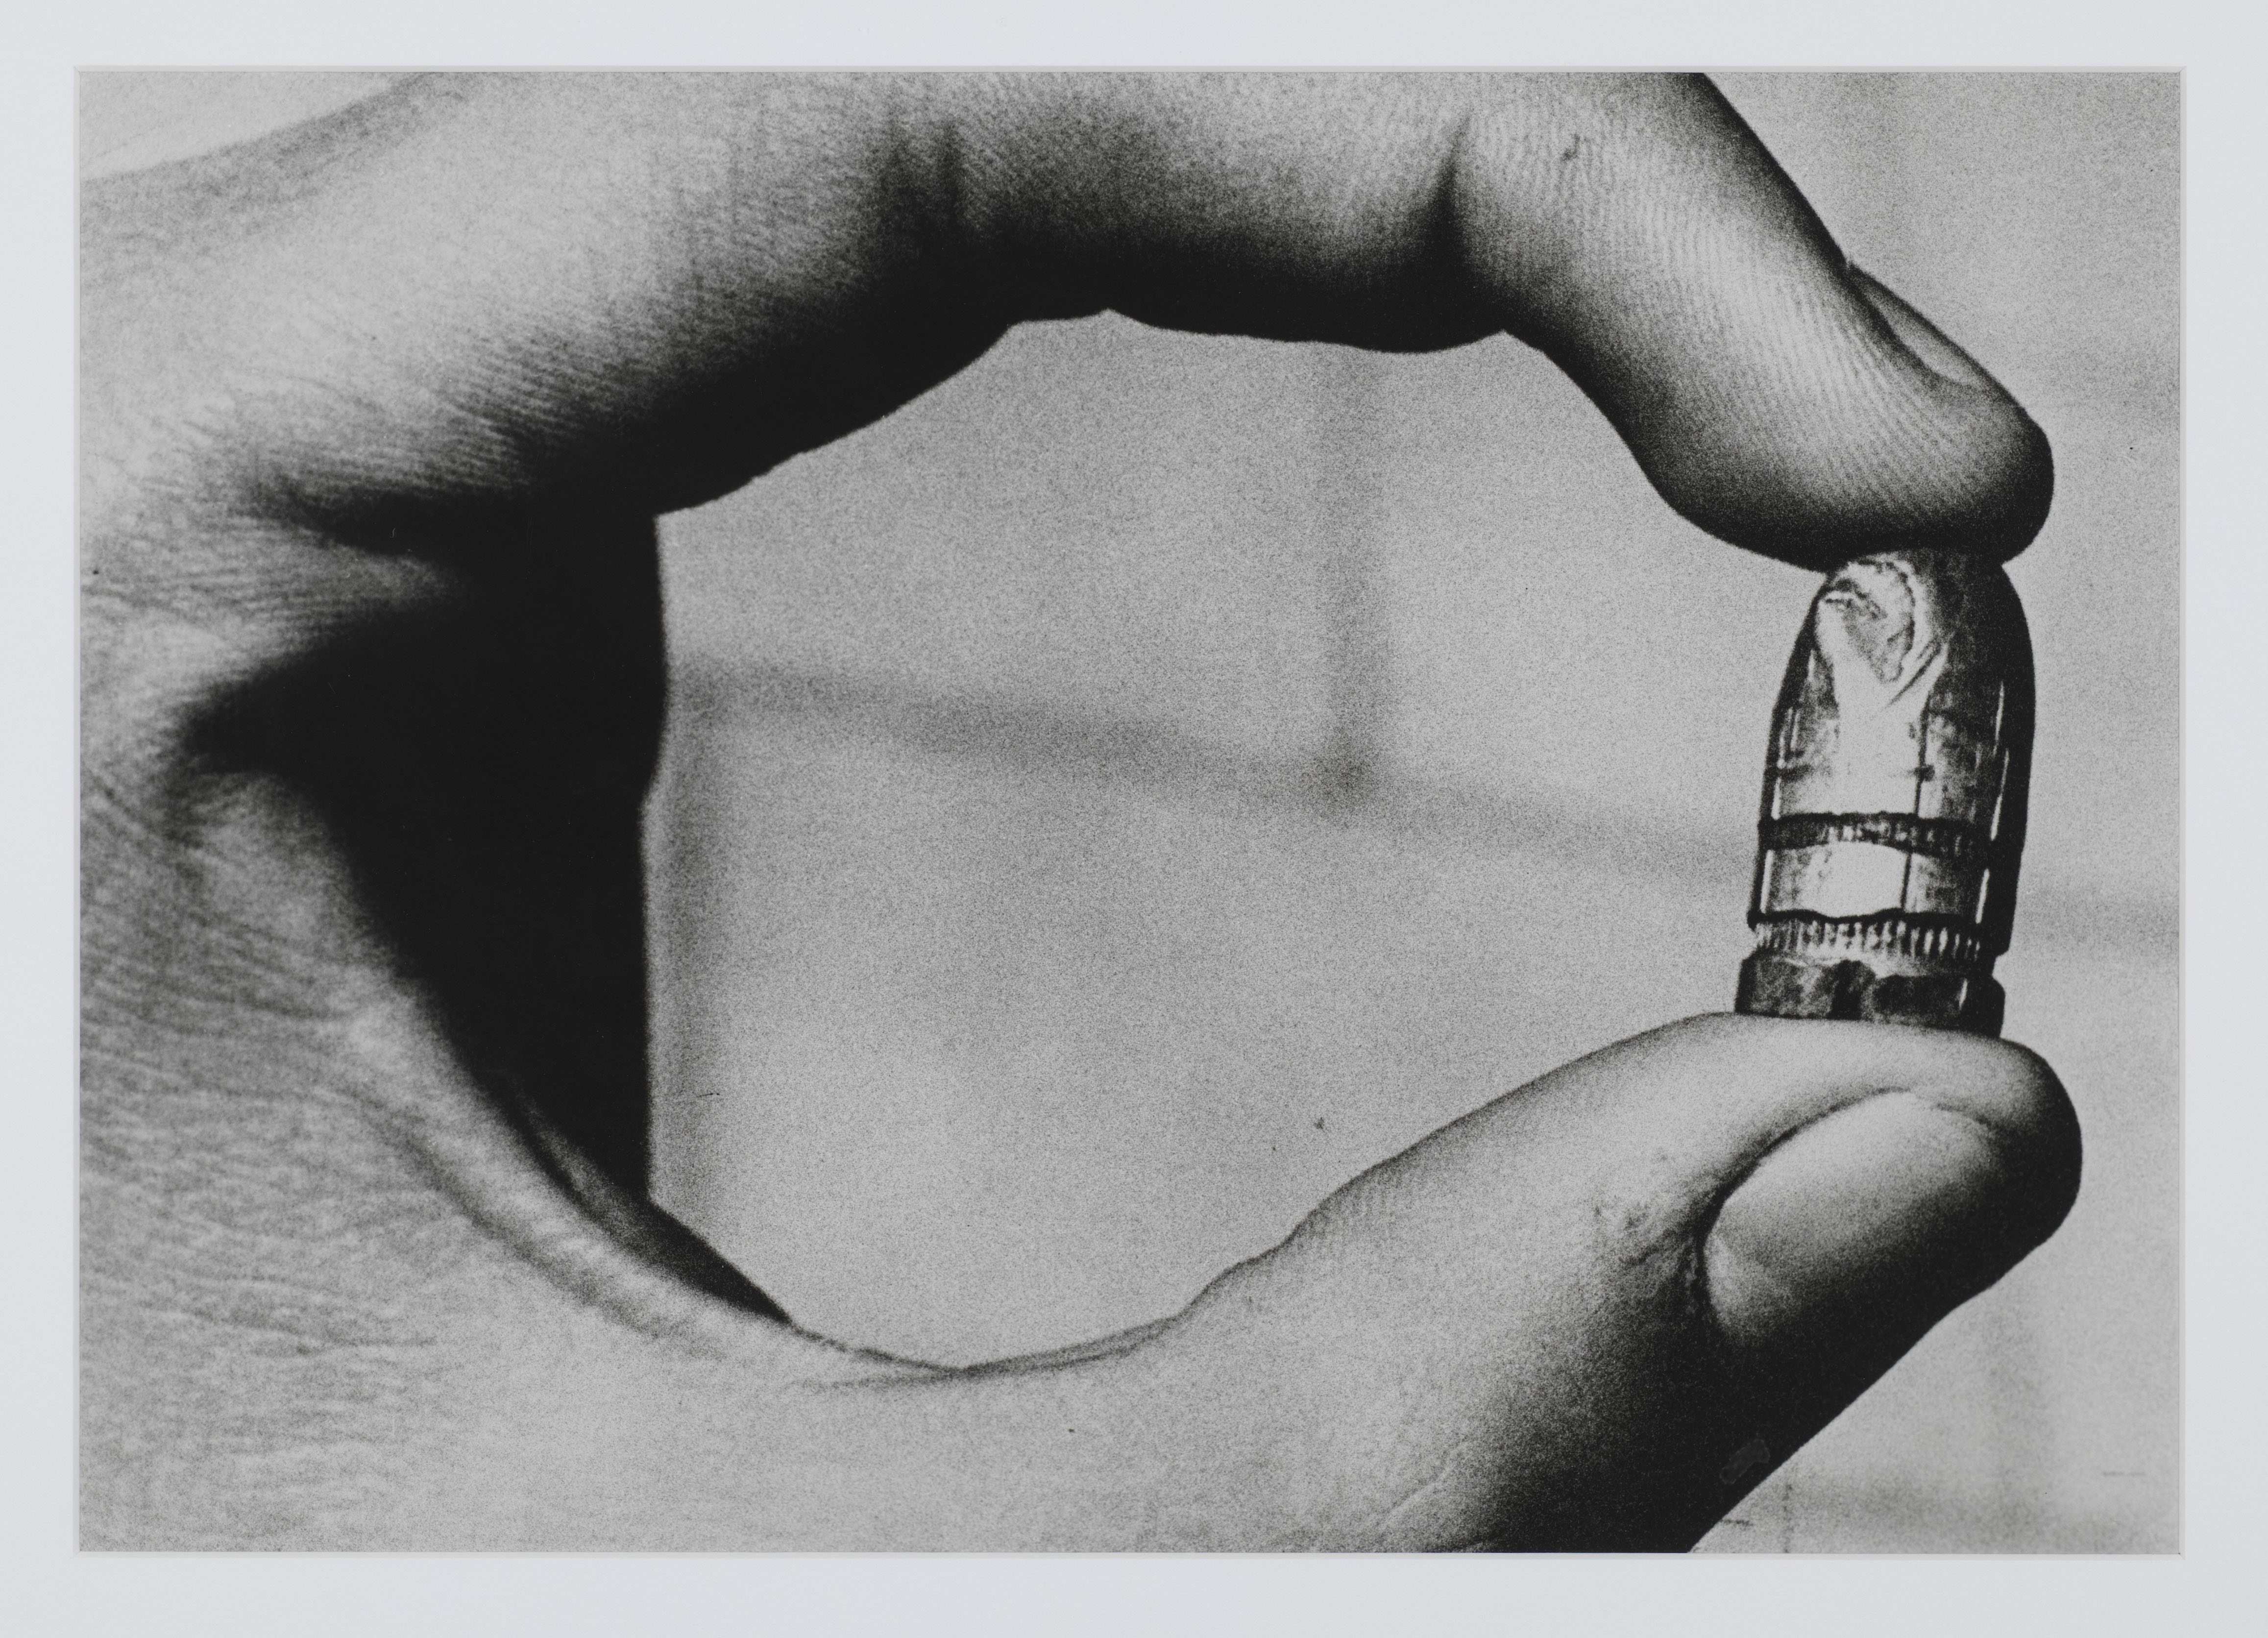 Photograph of a bullet from 'Forensics' exhibition. The photography of Metinides was useful for ballistic experts in matching artillery to the ammunition used at a crime scene.